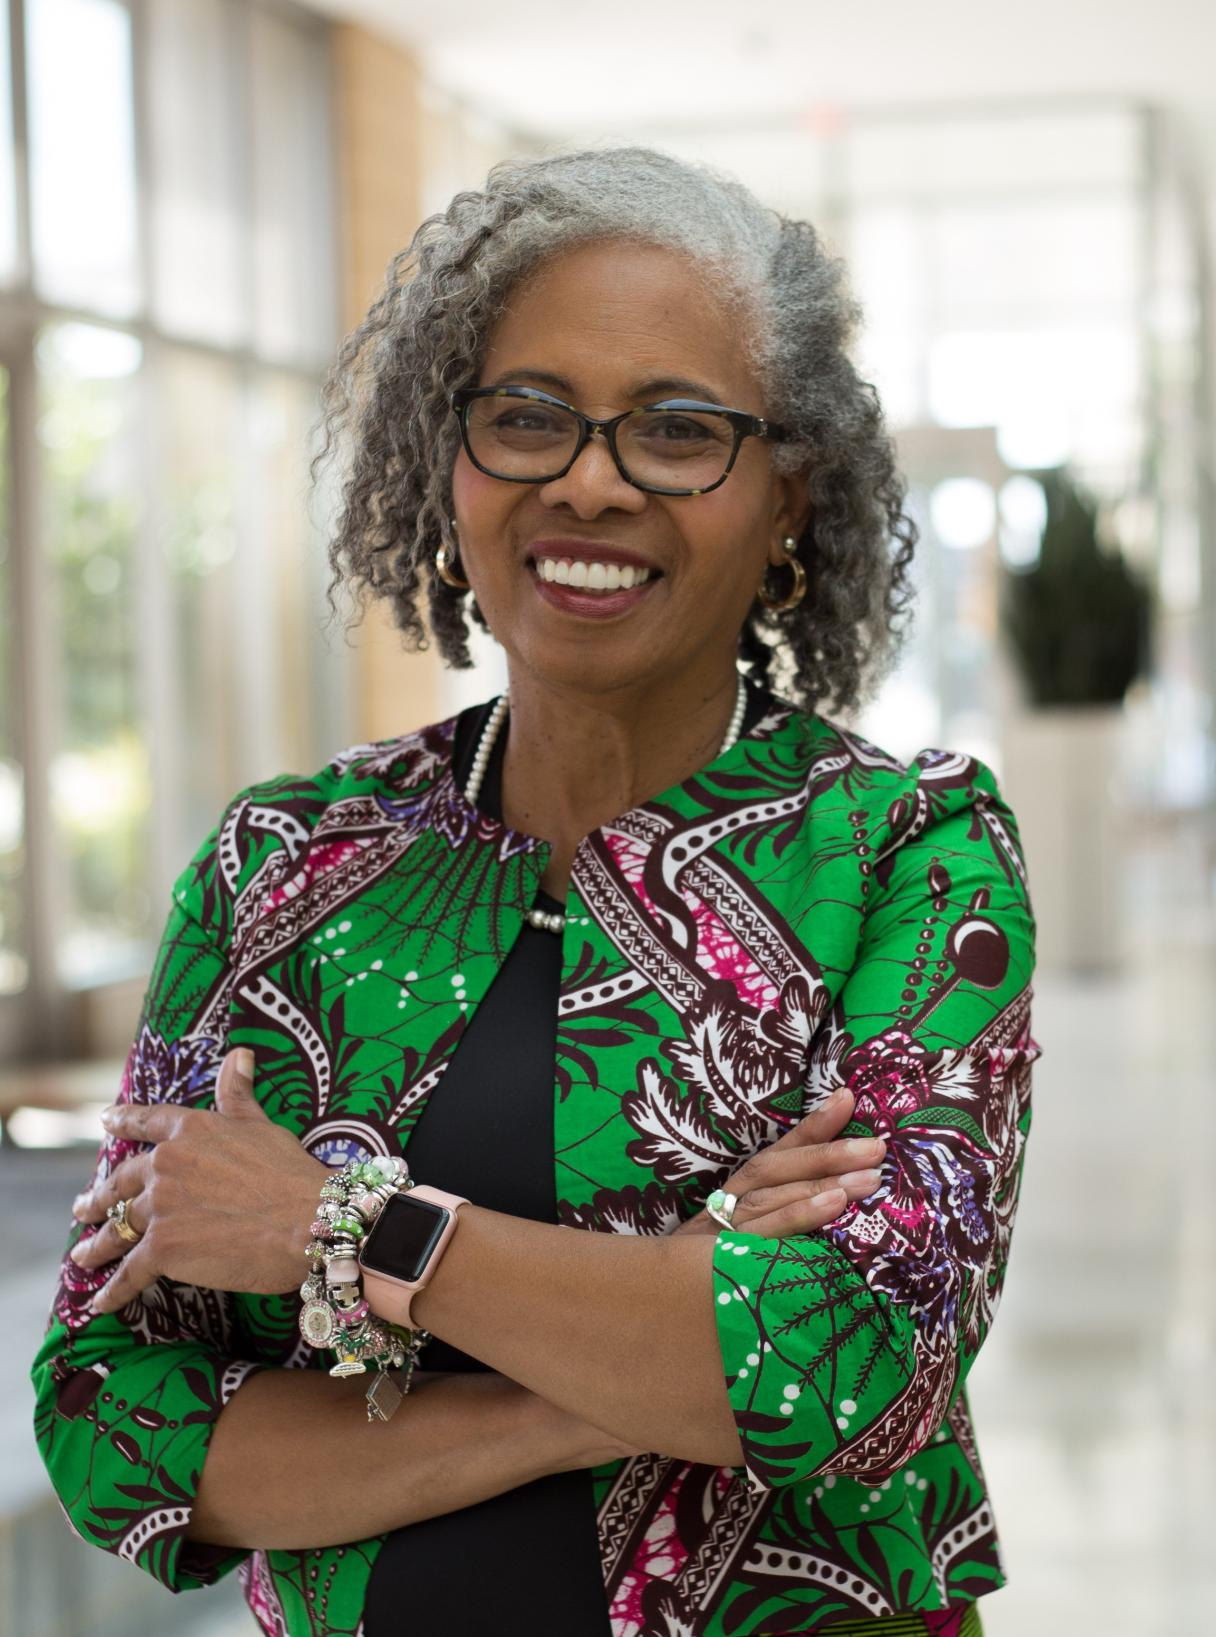 The Brodie Family Lecture - Hip Hop/Hip Hope: The (R)Evolution of Culturally Relevant Pedagogy with Gloria Ladson-Billings